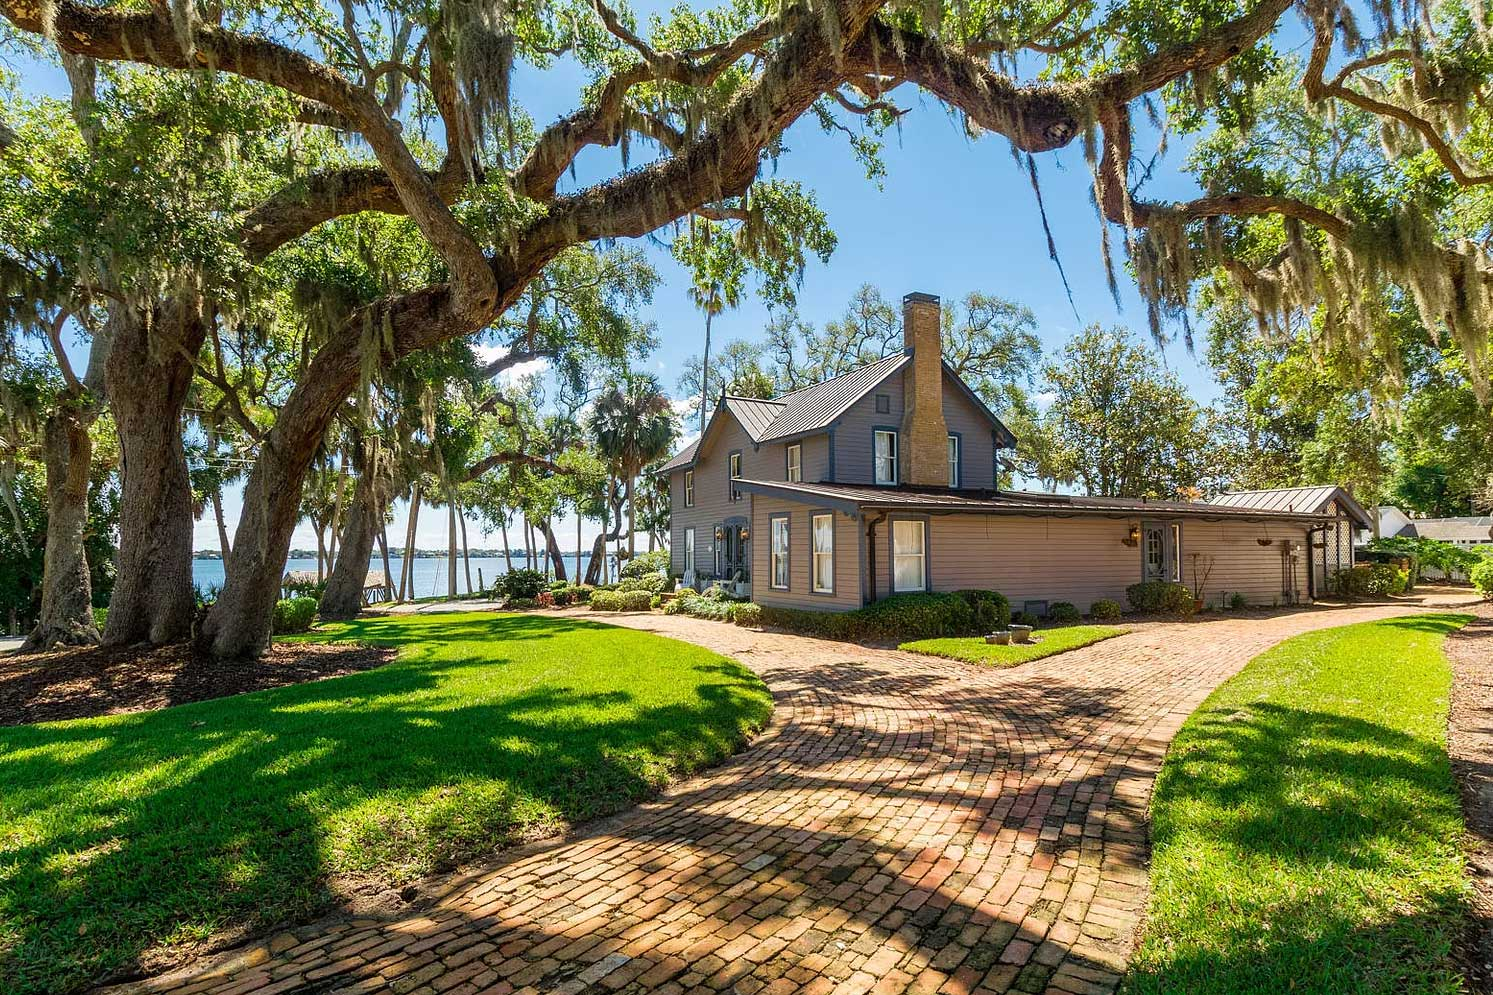 9 Beautiful Historical Houses For Sale in Central East Florida Right Now